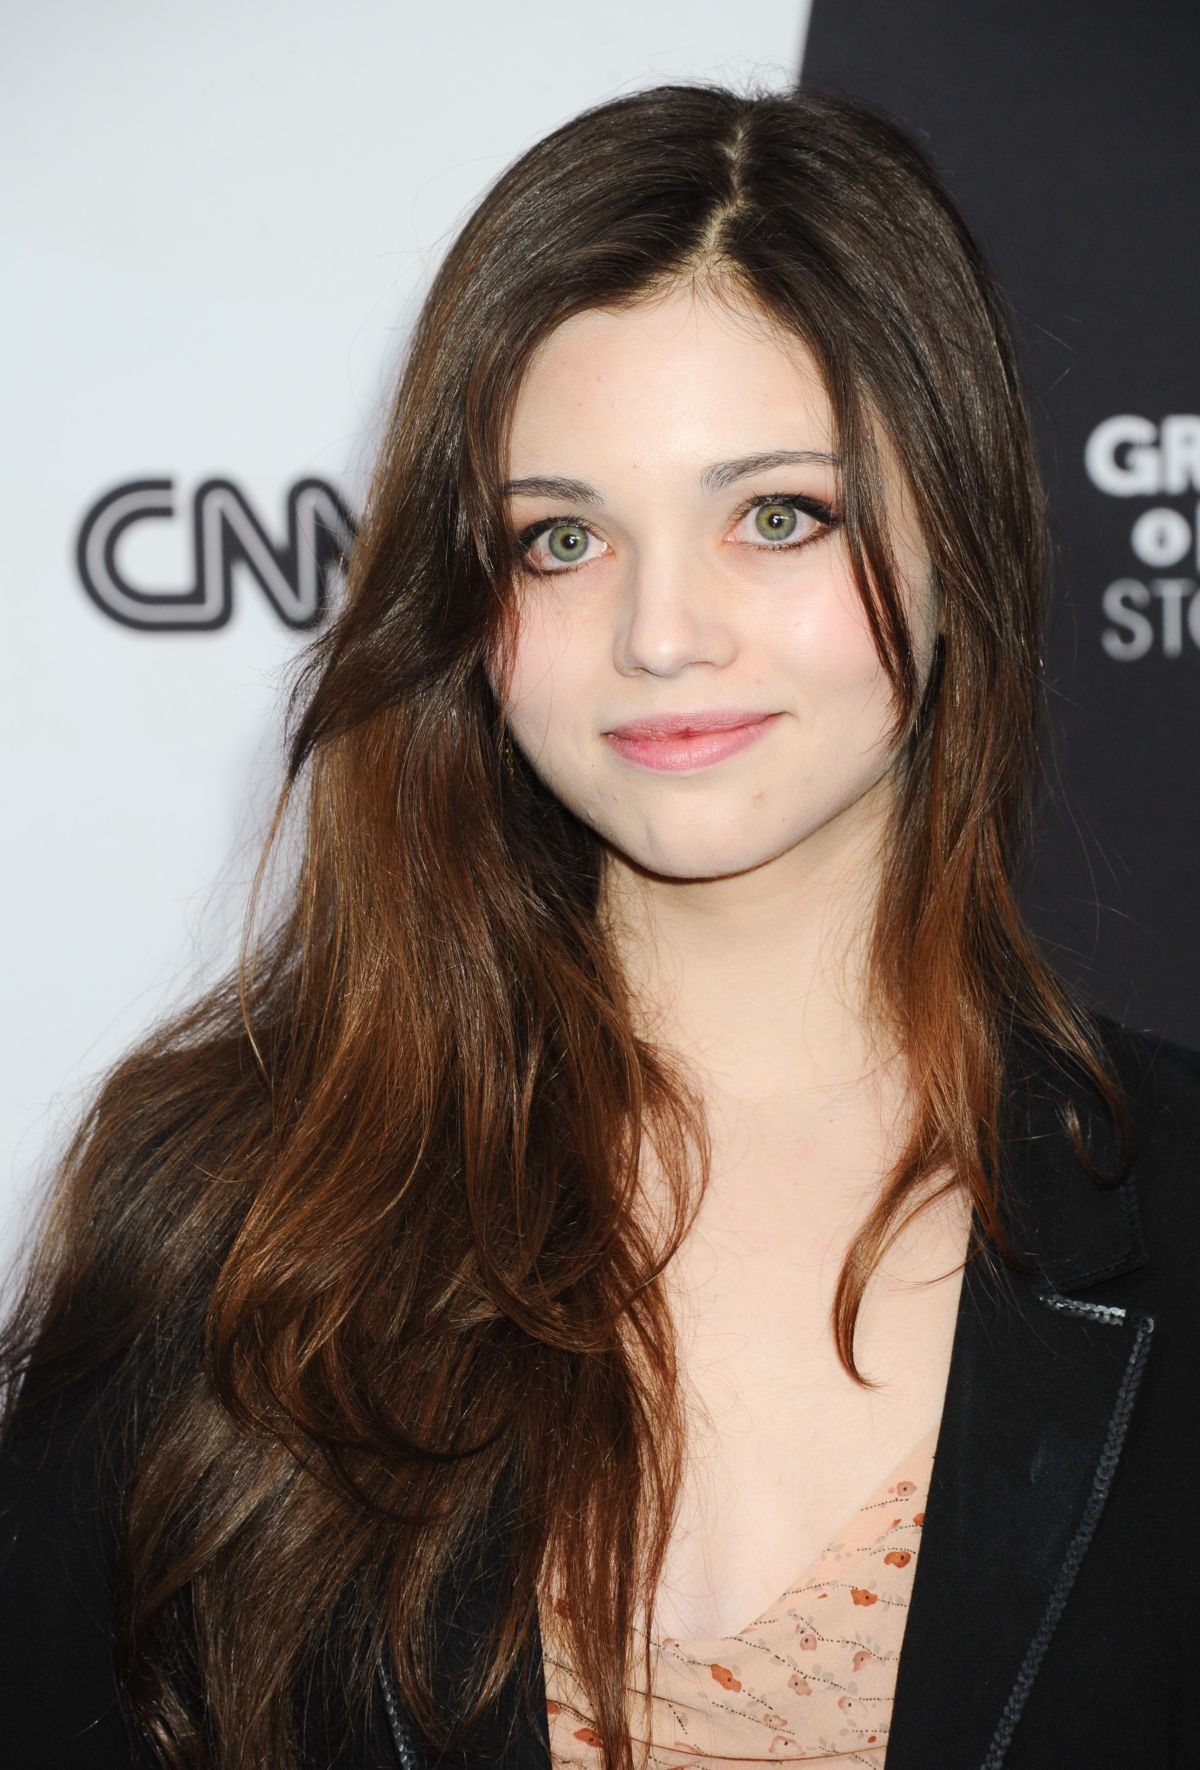 India Eisley ass - 2019 year